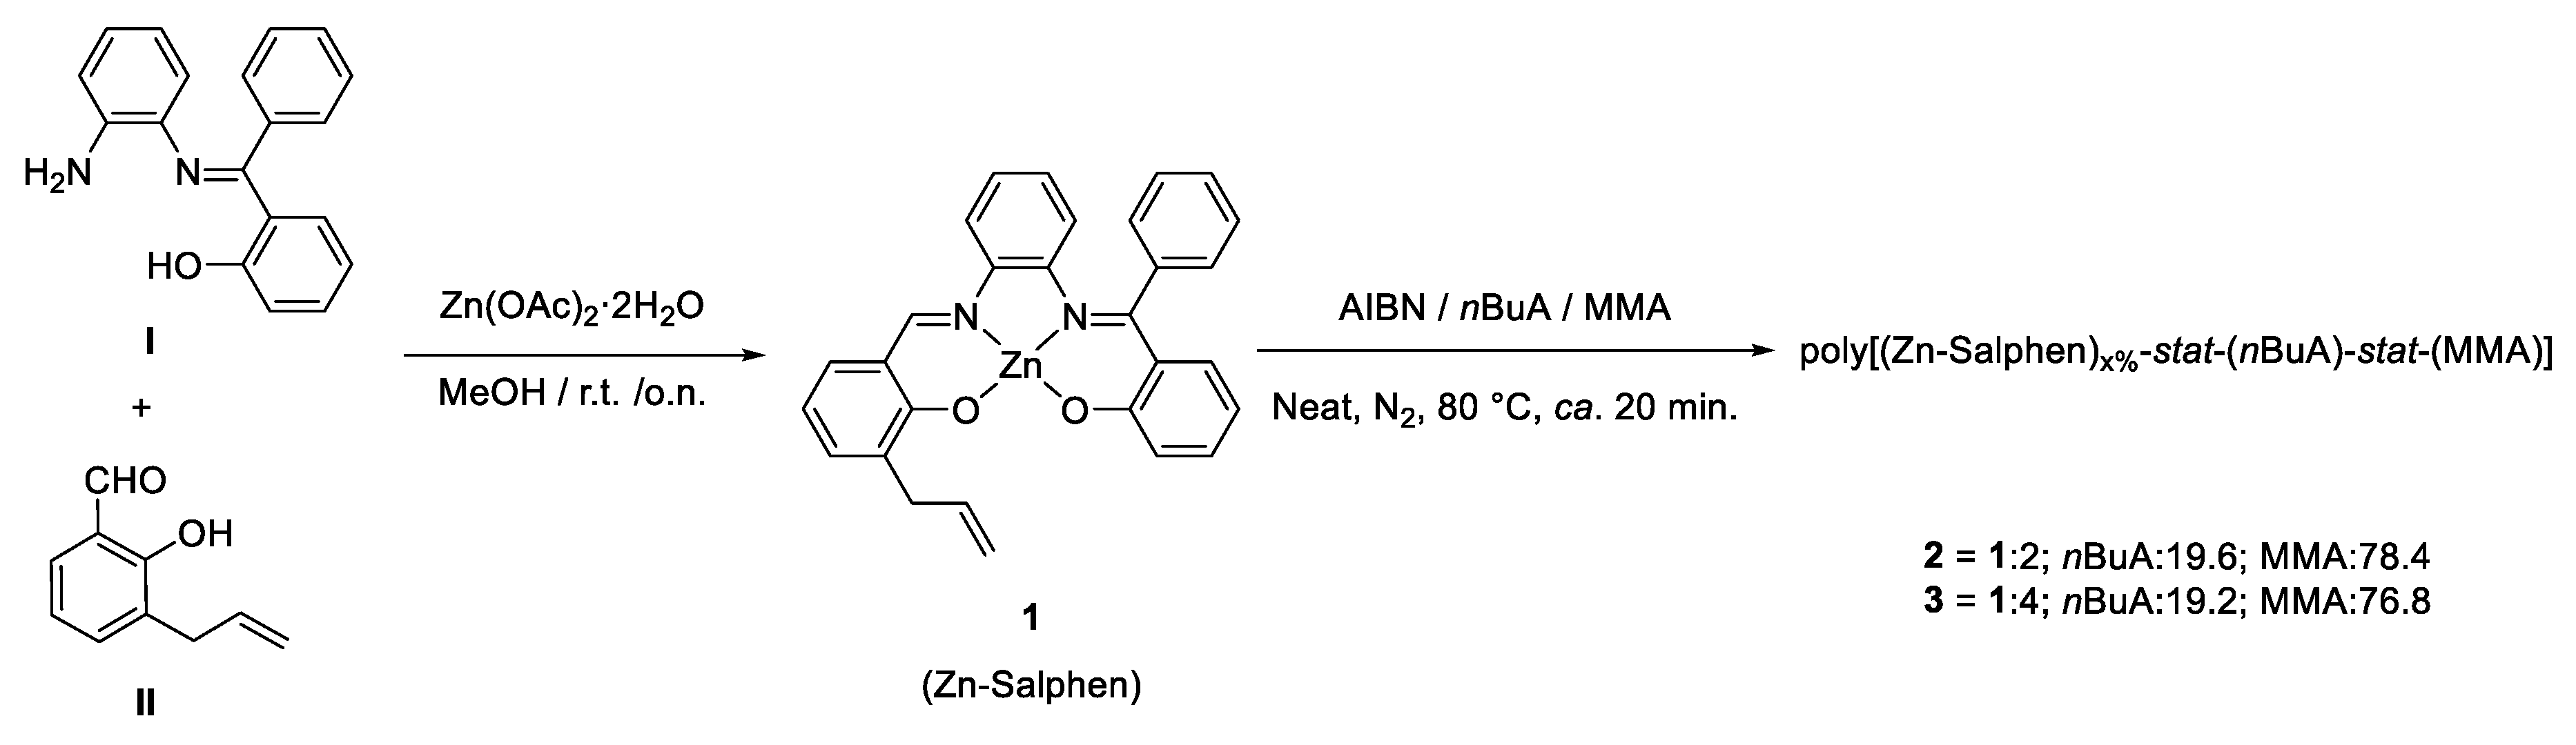 Molecules | Free Full-Text | Synthesis of a Novel Zn-Salphen